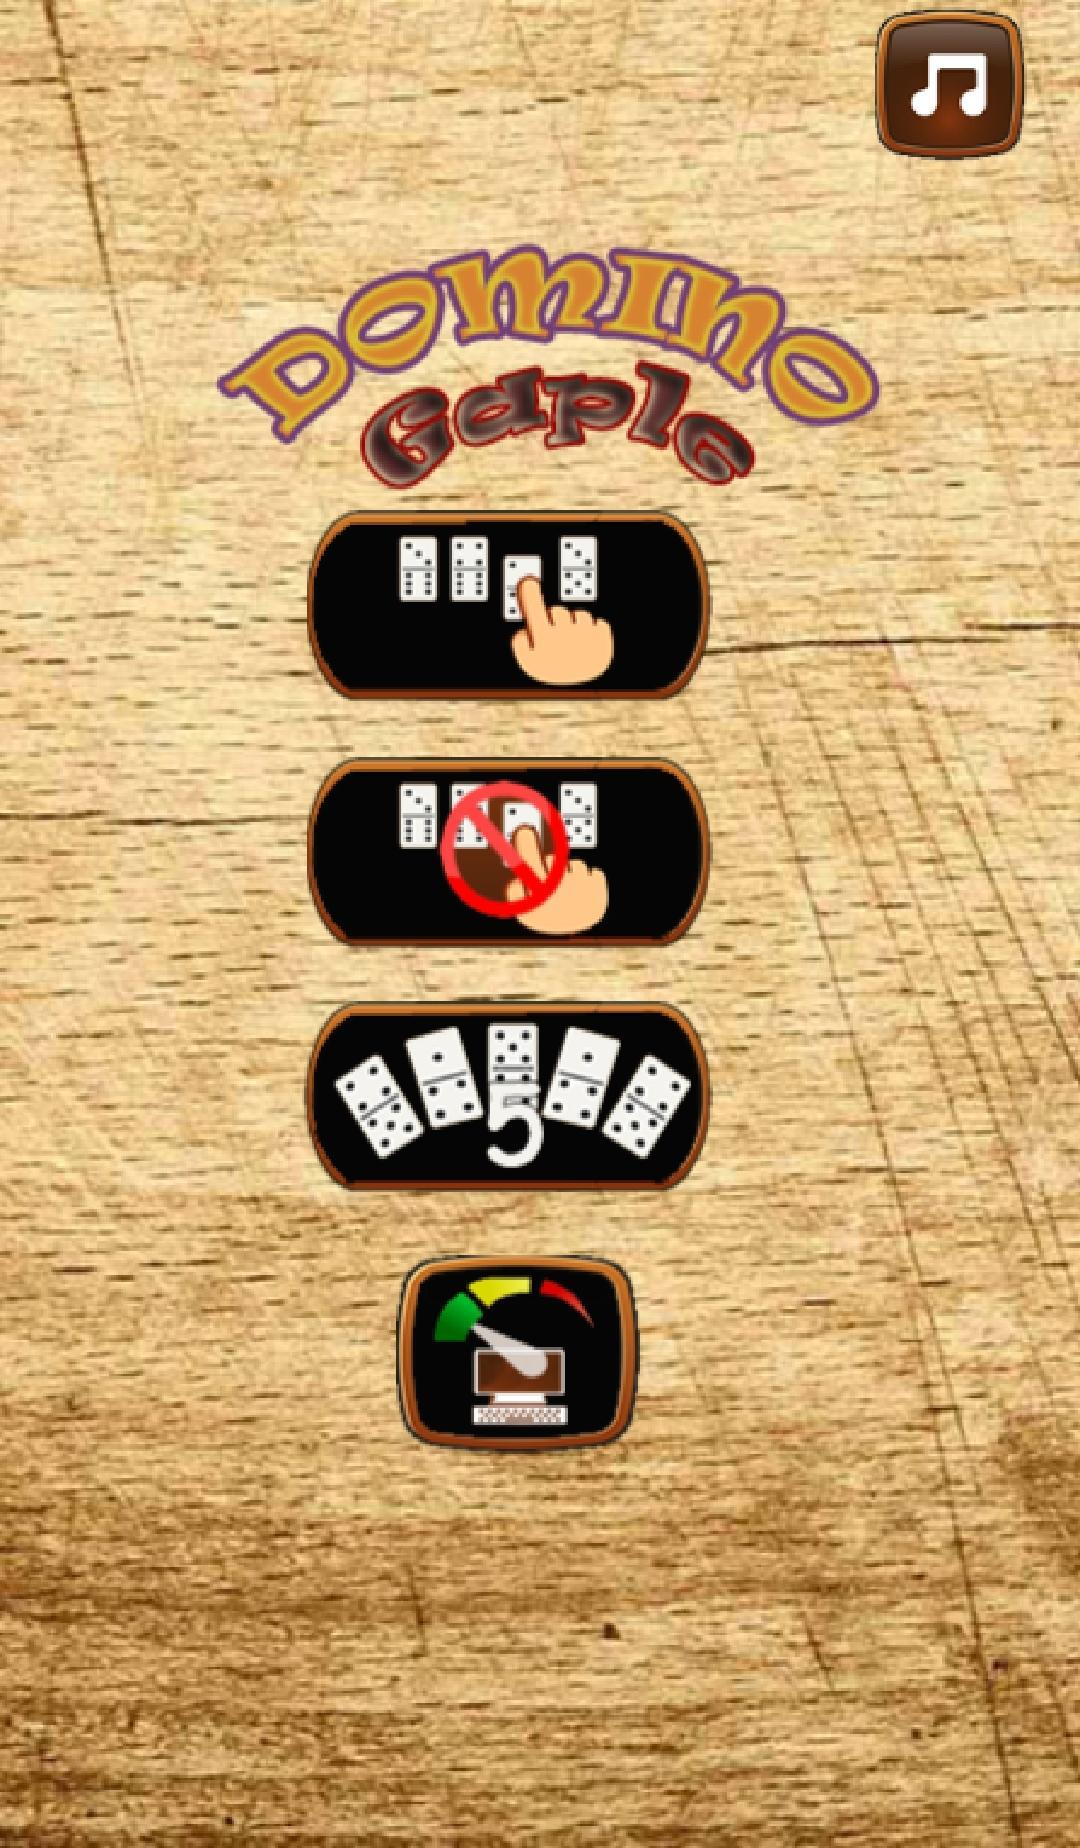 Domino Gaple Qiu Qiu Offline For Android Apk Download